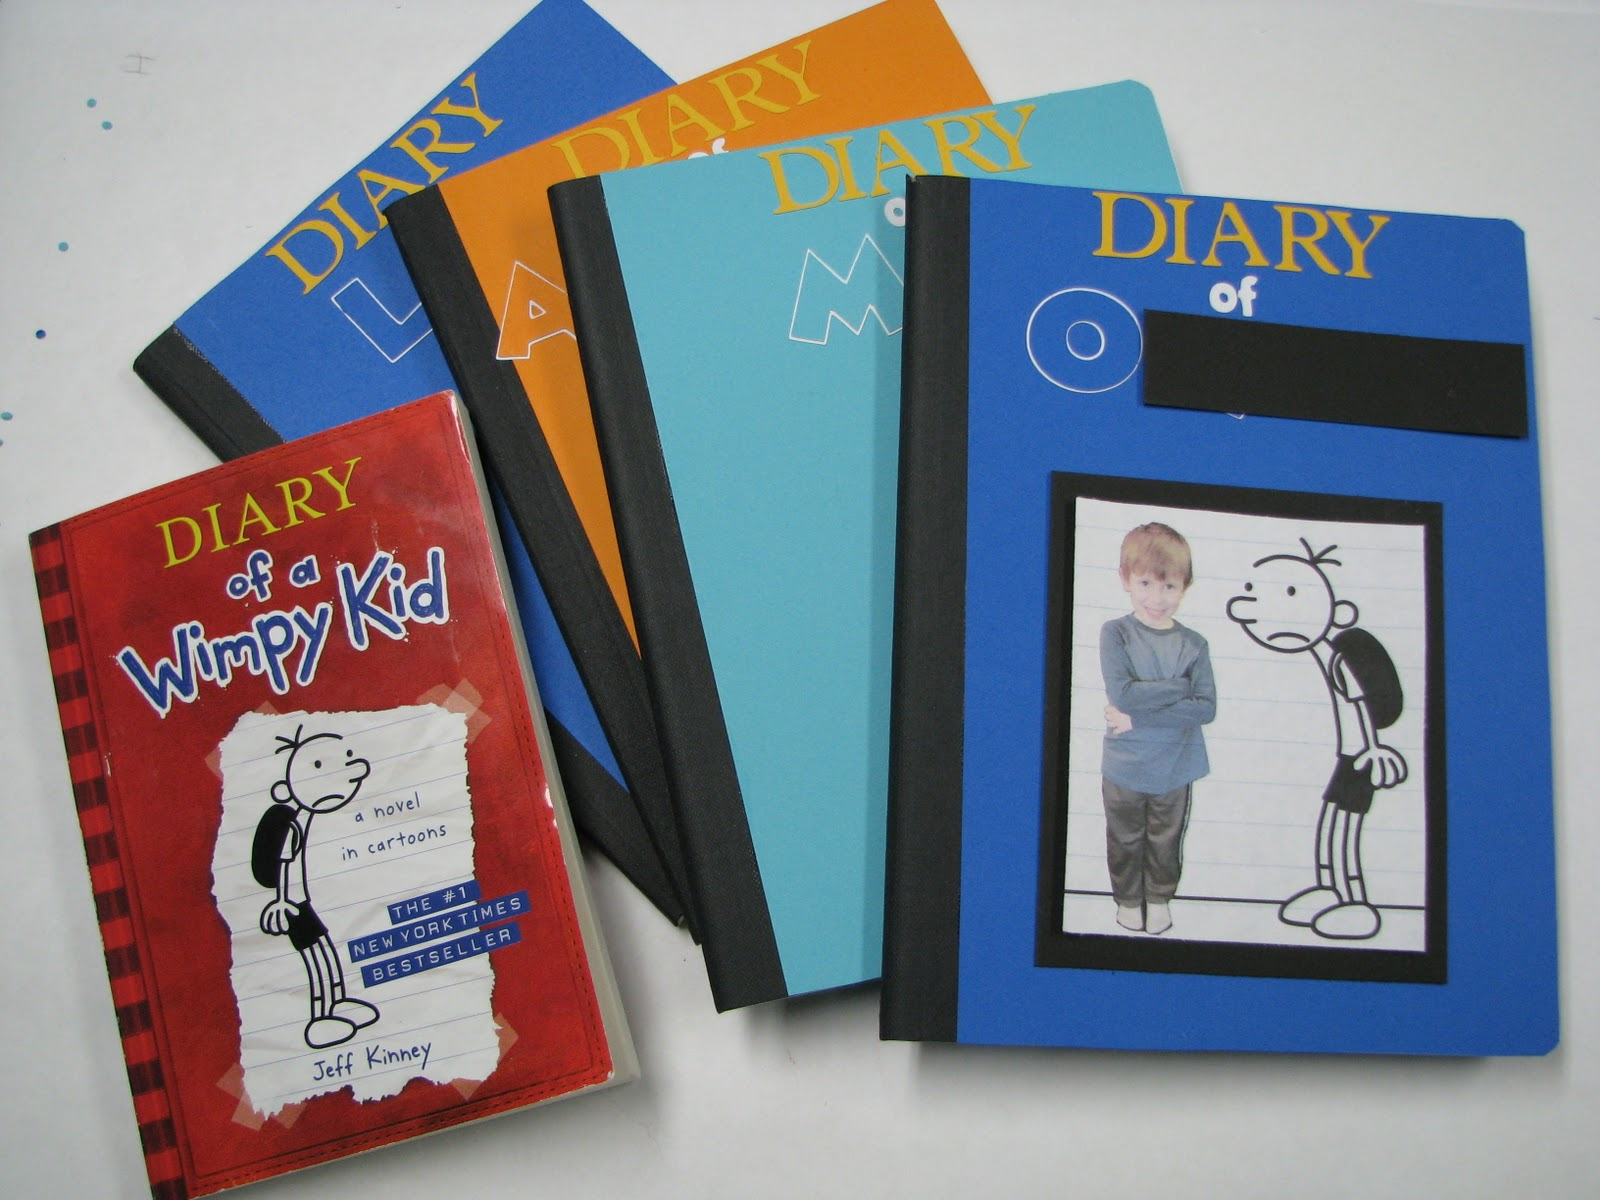 Cmom productions a wimpy kid birthday for Diary of a wimpy kid crafts